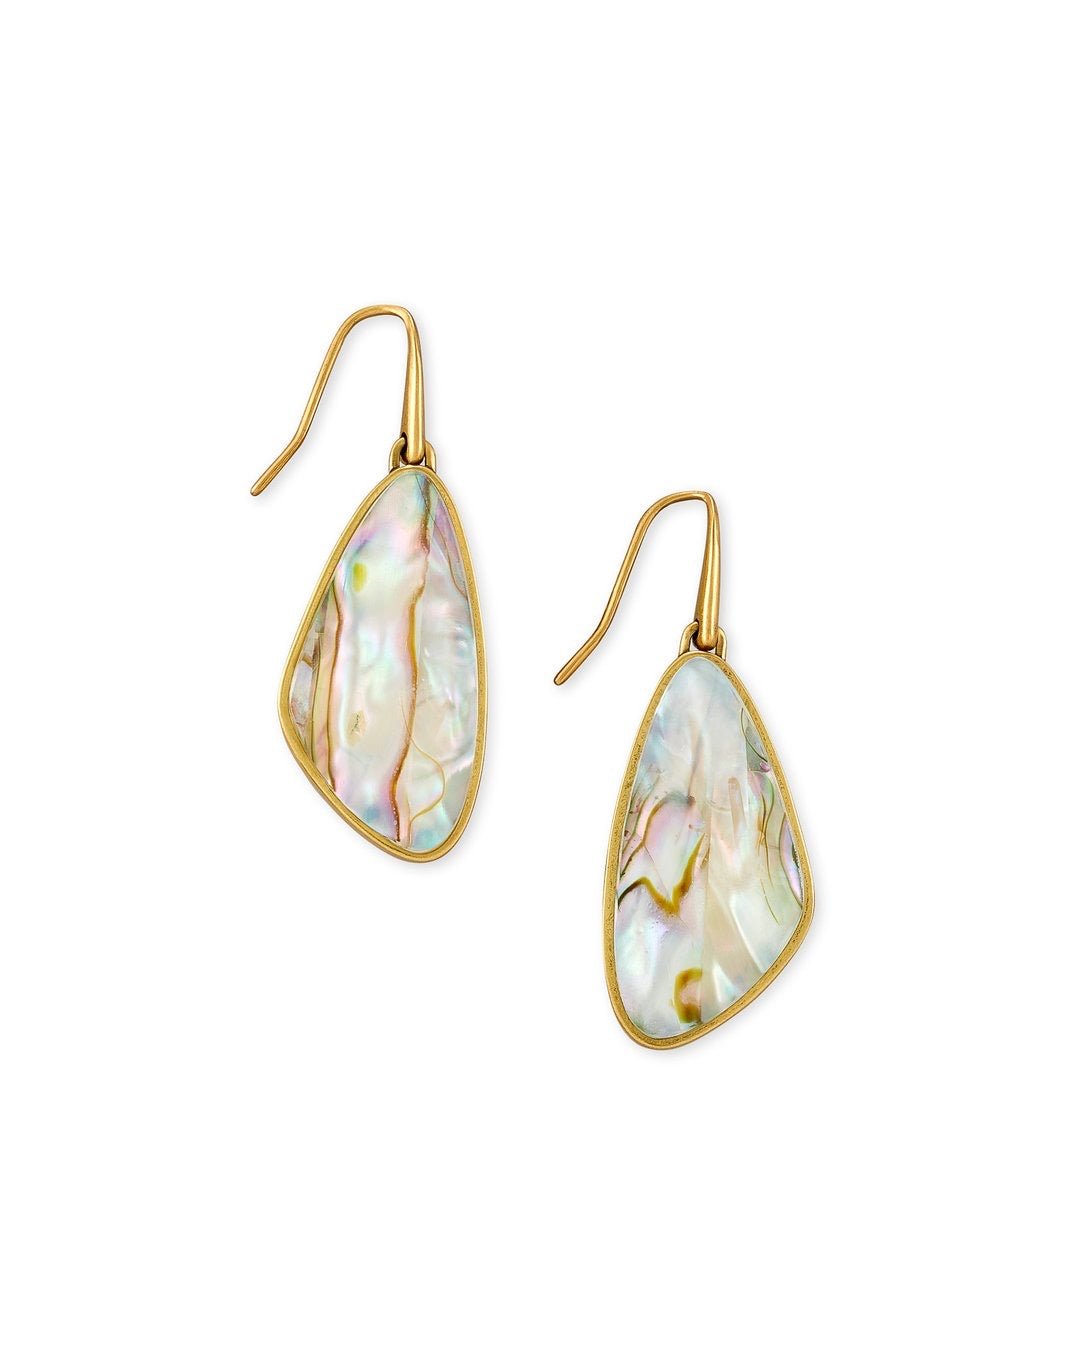 McKenna Small Drop Earring in White Abalone